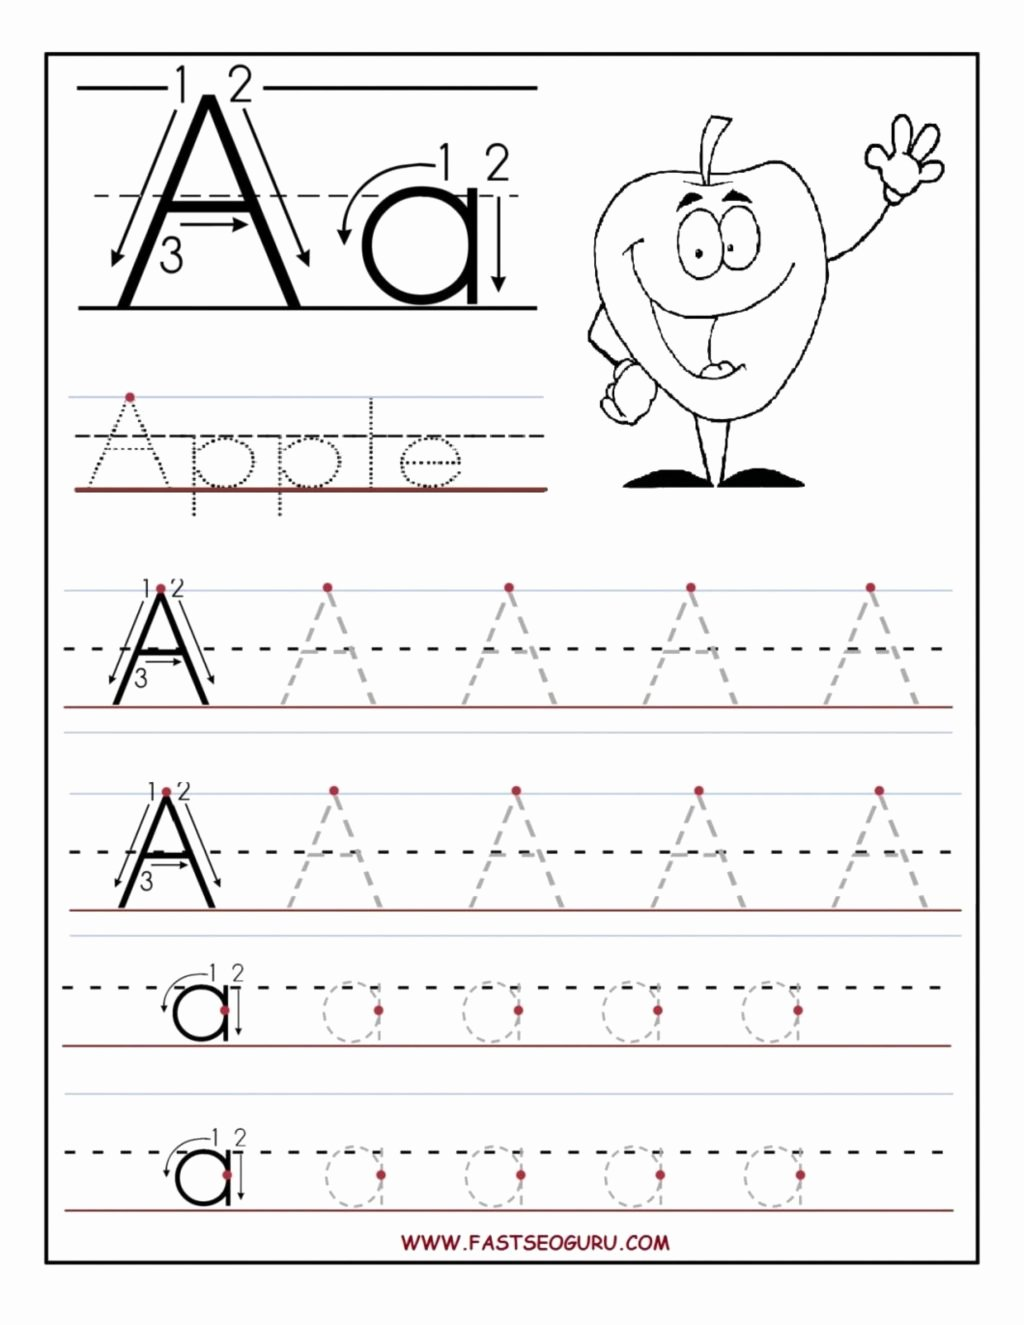 Letter Tracing Worksheets for Preschoolers Free Lovely Worksheet Worksheet Trace Letters Tracing Worksheets for